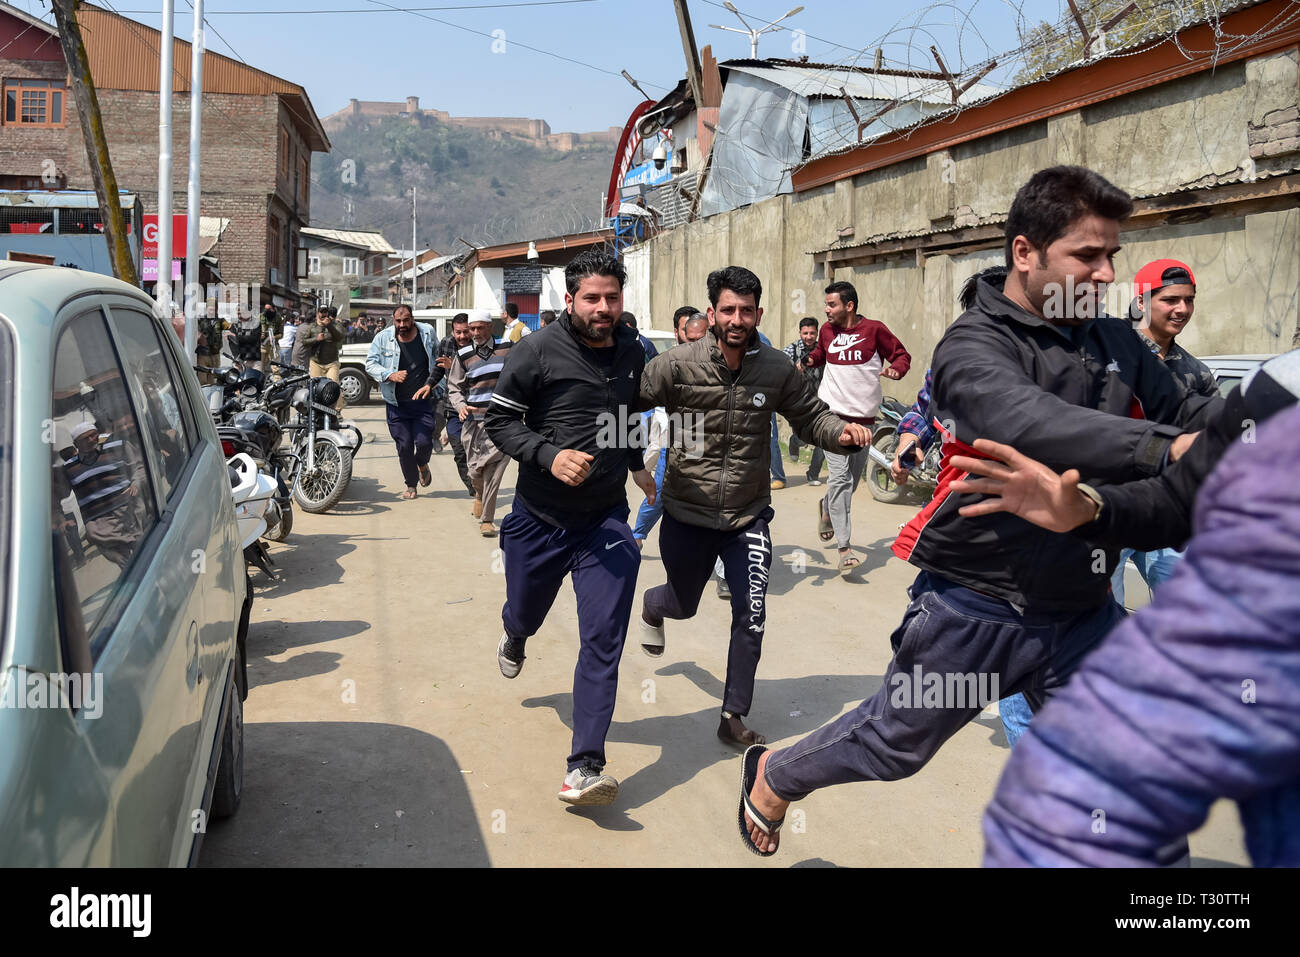 Srinagar, Kashmir  5th April, 2019  Relatives of prison inmates seen